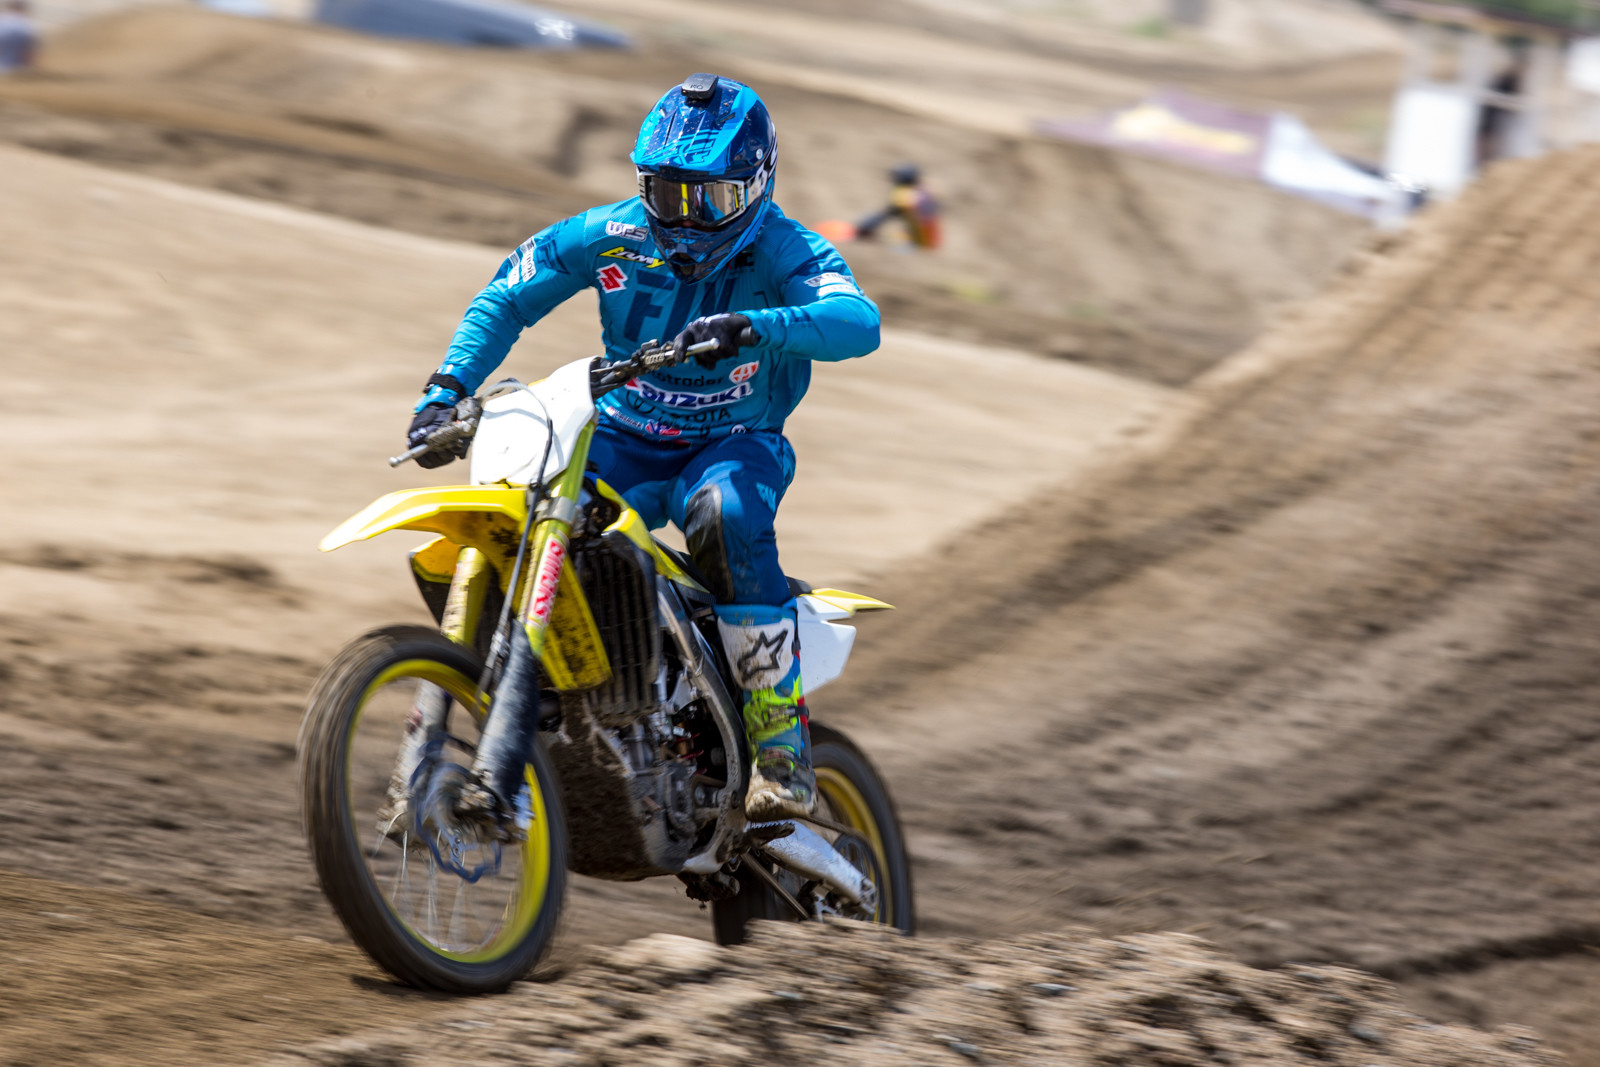 Weston Peick has had a solid Supercross series but he also shines when things go outdoors.